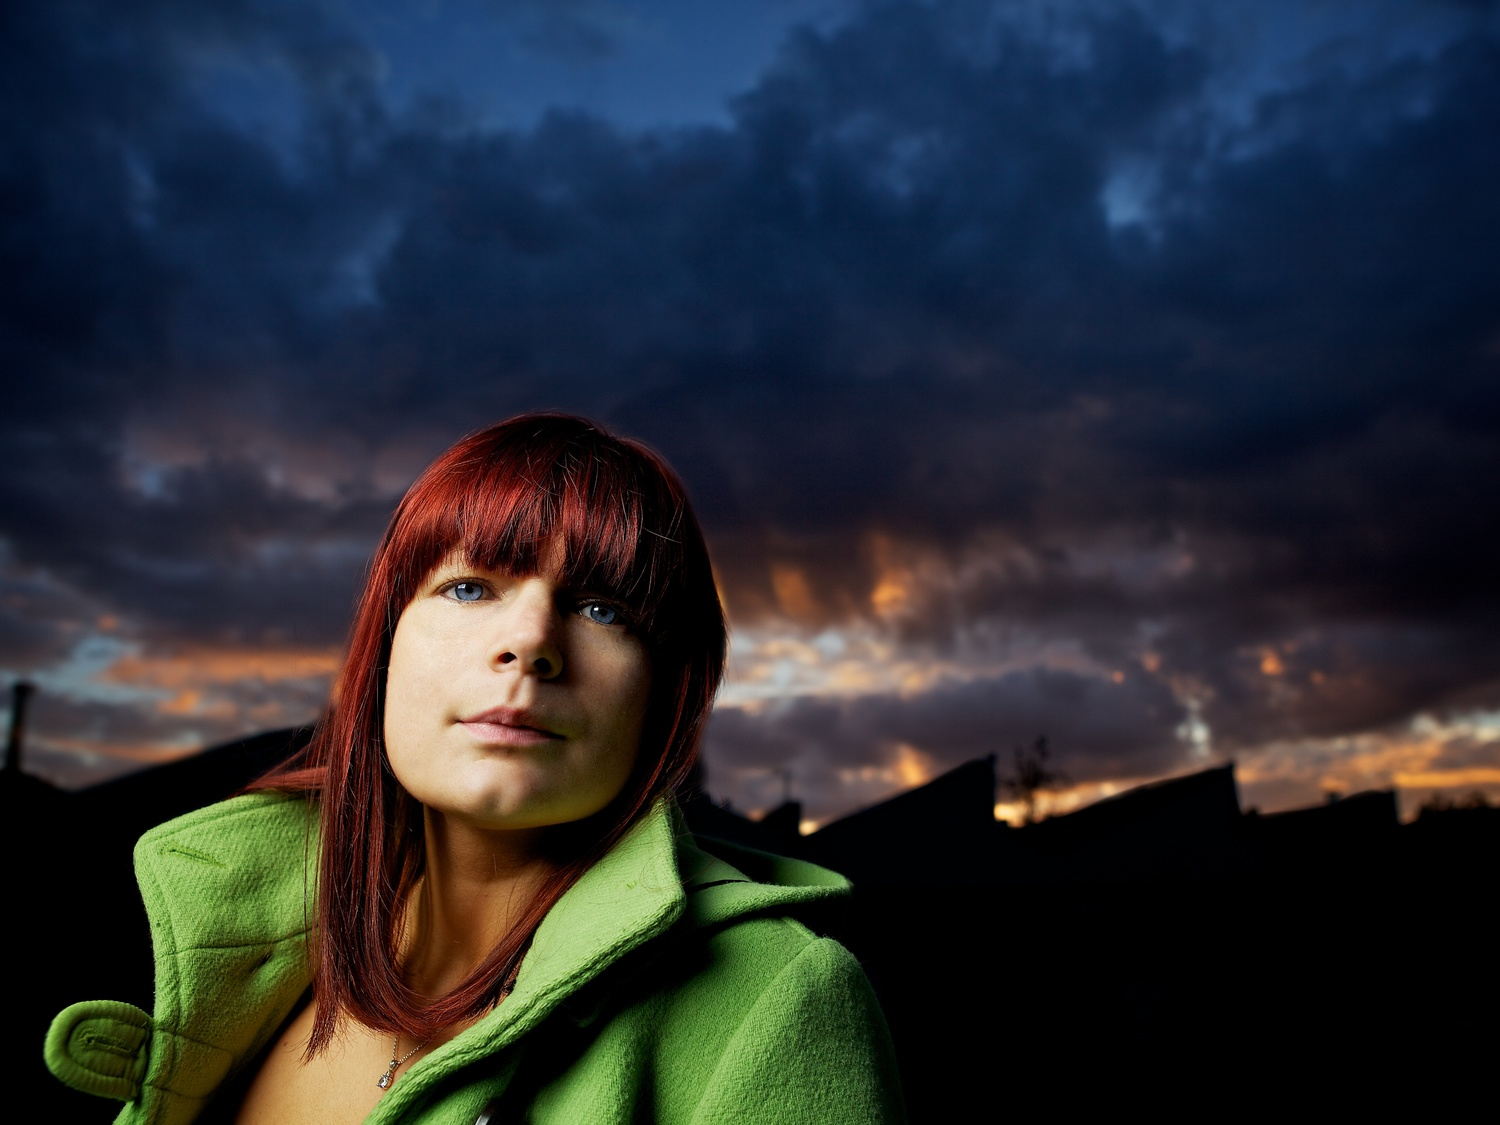 Off-camera flash in photography with a simple umbrella of a woman in a green coat at sunset